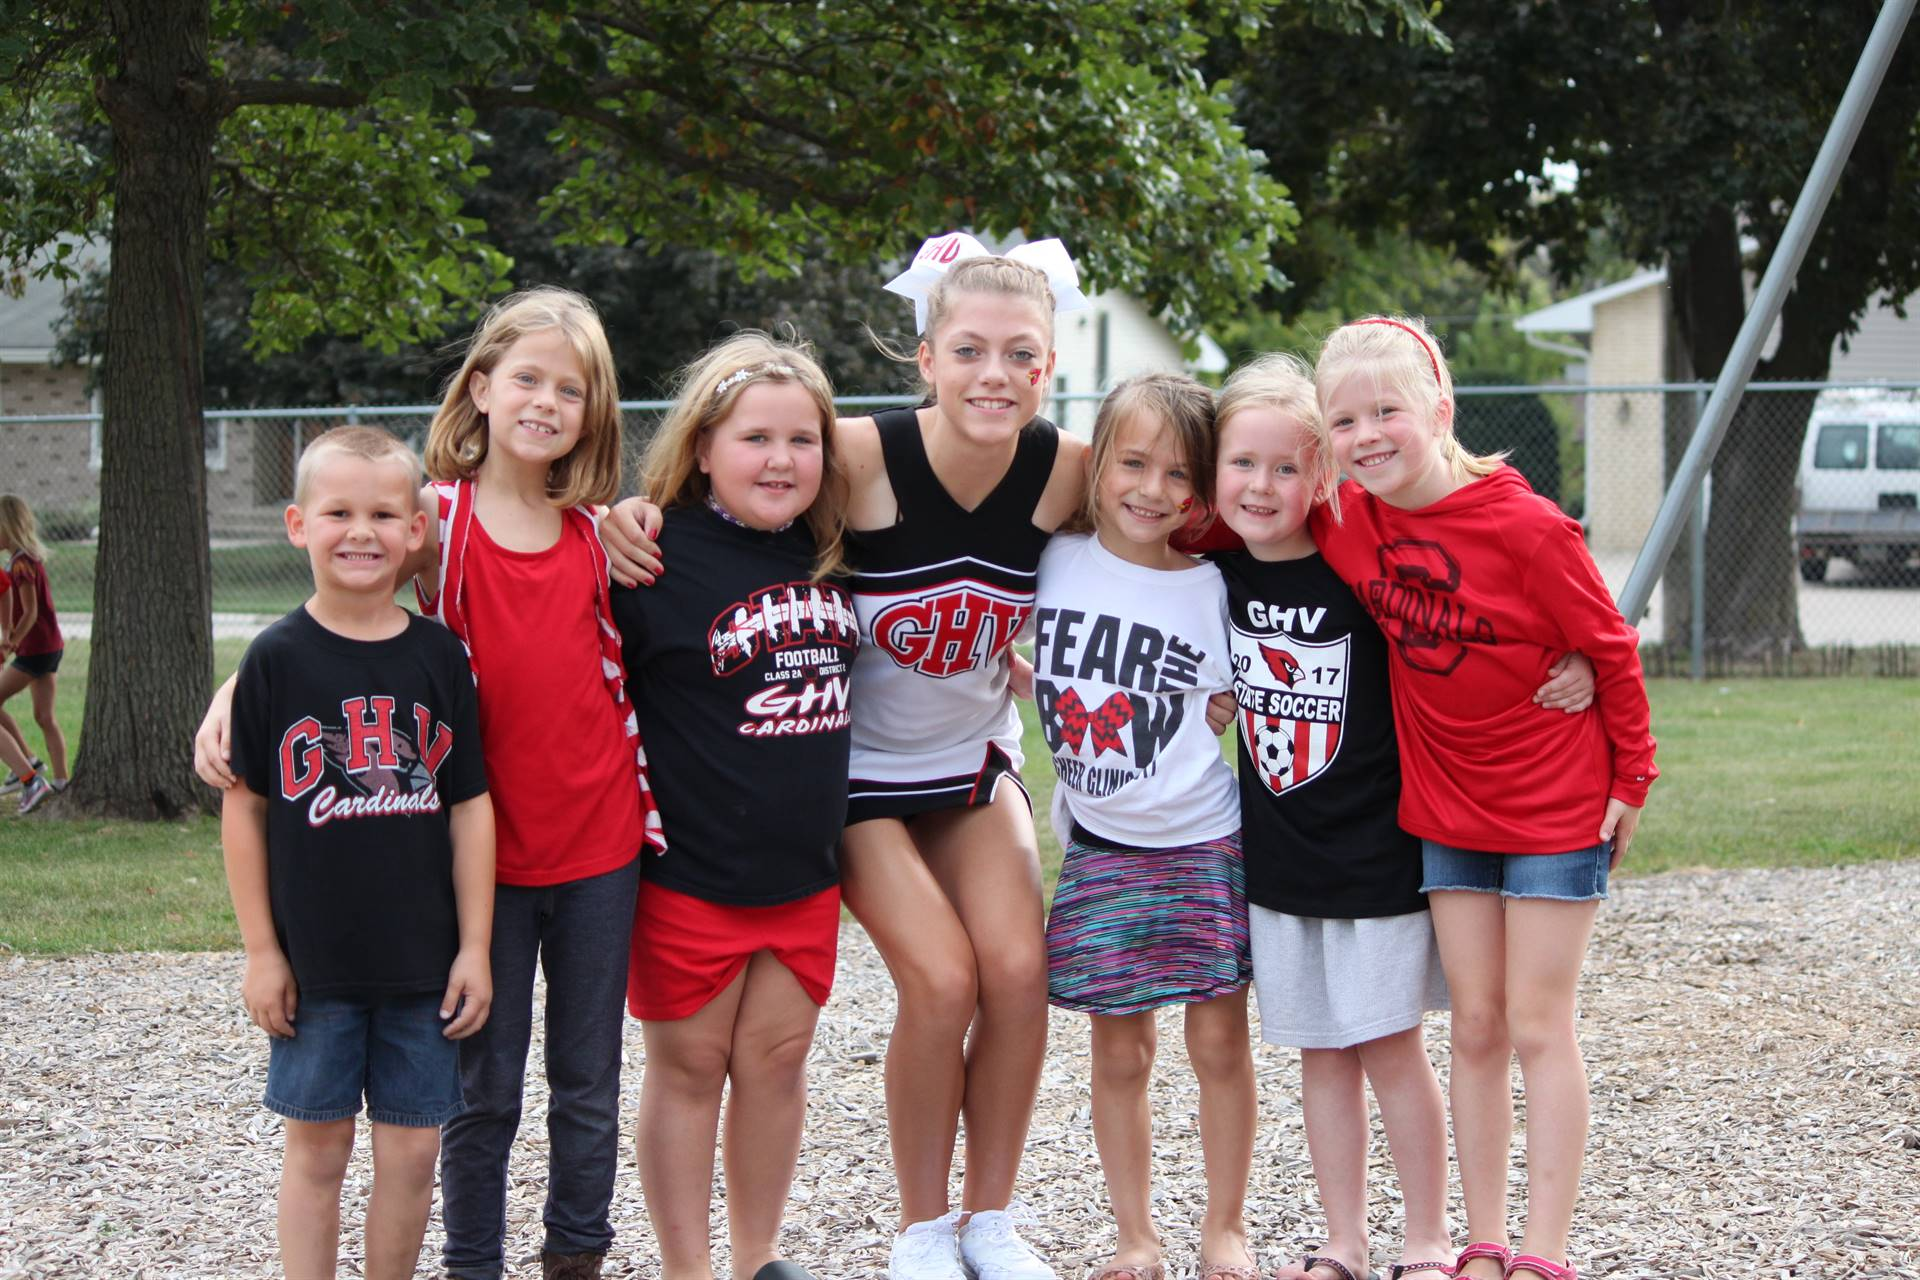 High school cheerleader posing with elementary students on playground